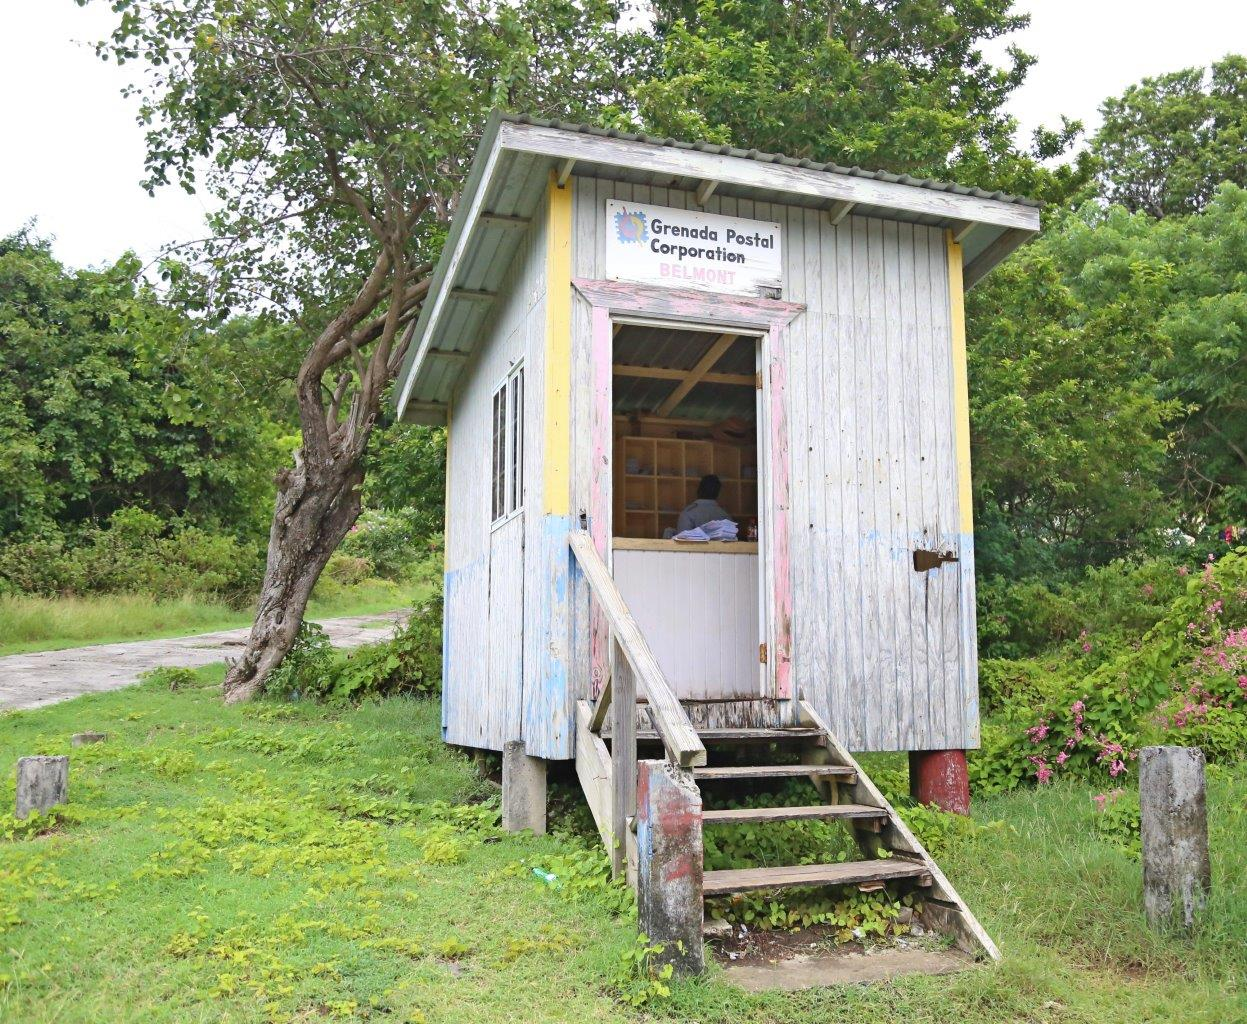 World's smallest Post Office (It's in the Guinness Book of World Records)